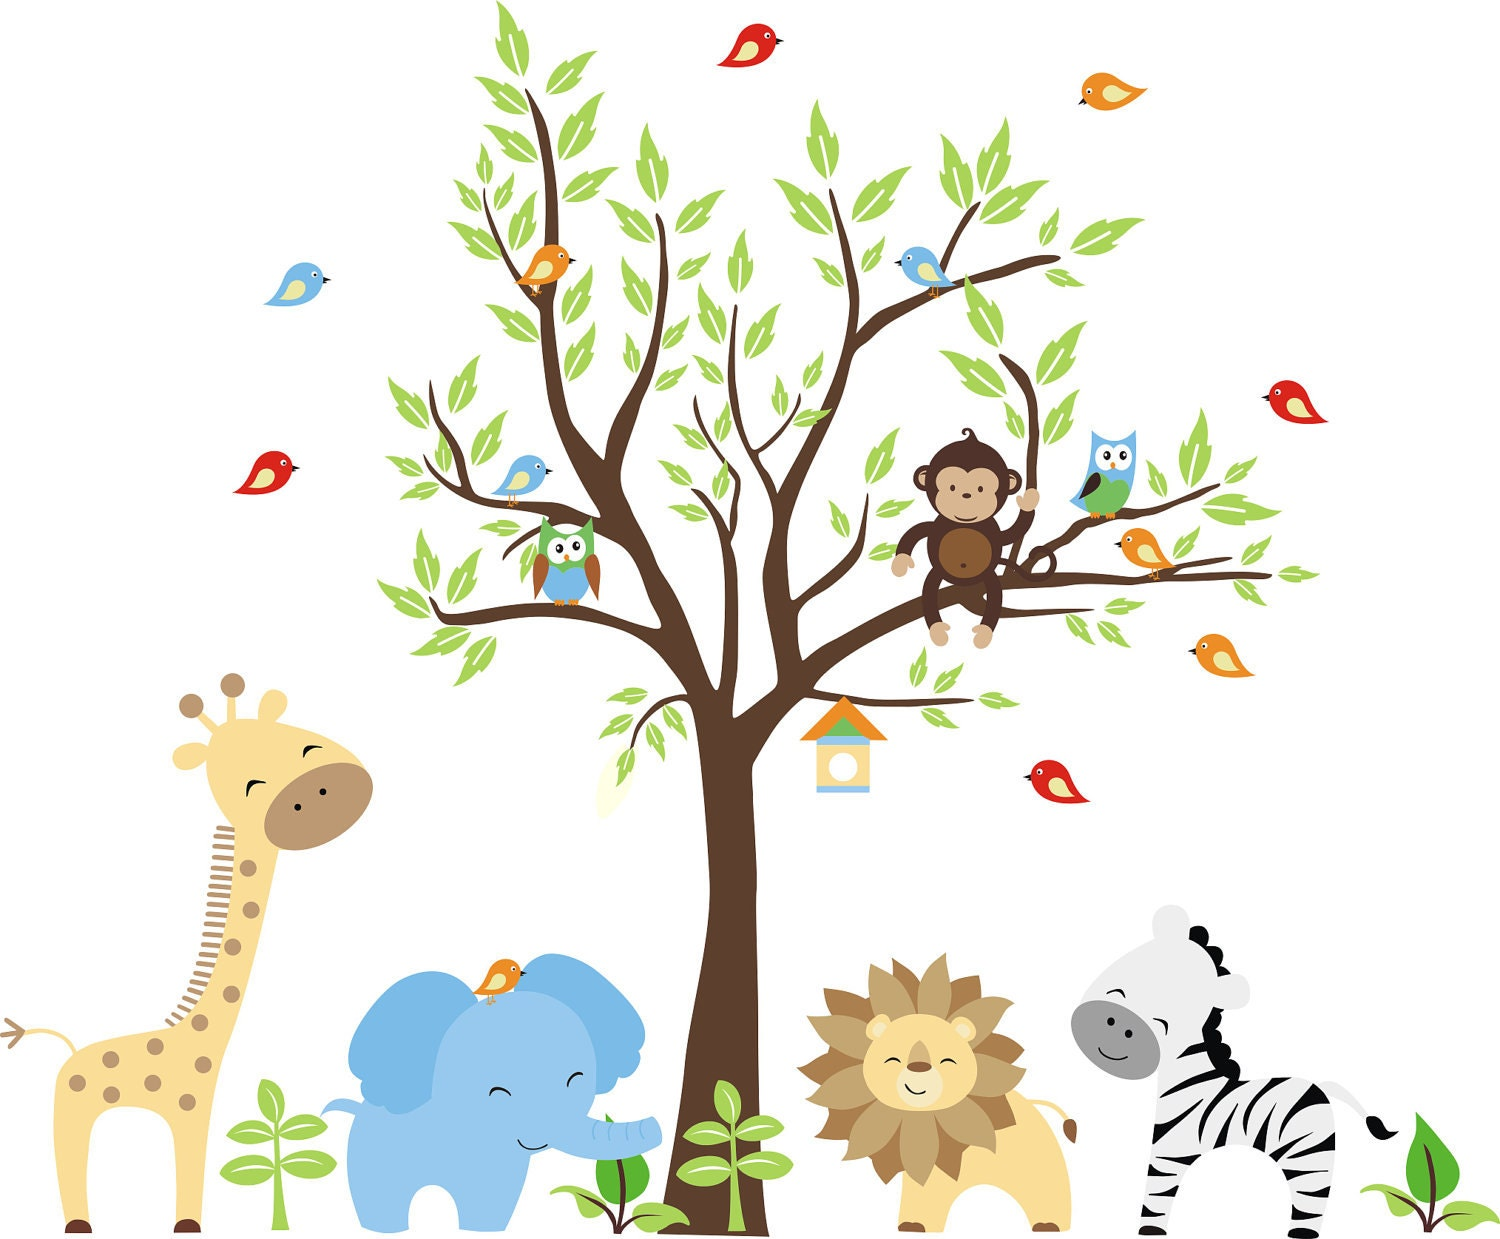 Monkeys everywhere wall decals jungle tree with monekys wall brewster childrens jungle wall decals jungle home decor nursery wall decals jungle amipublicfo Image collections